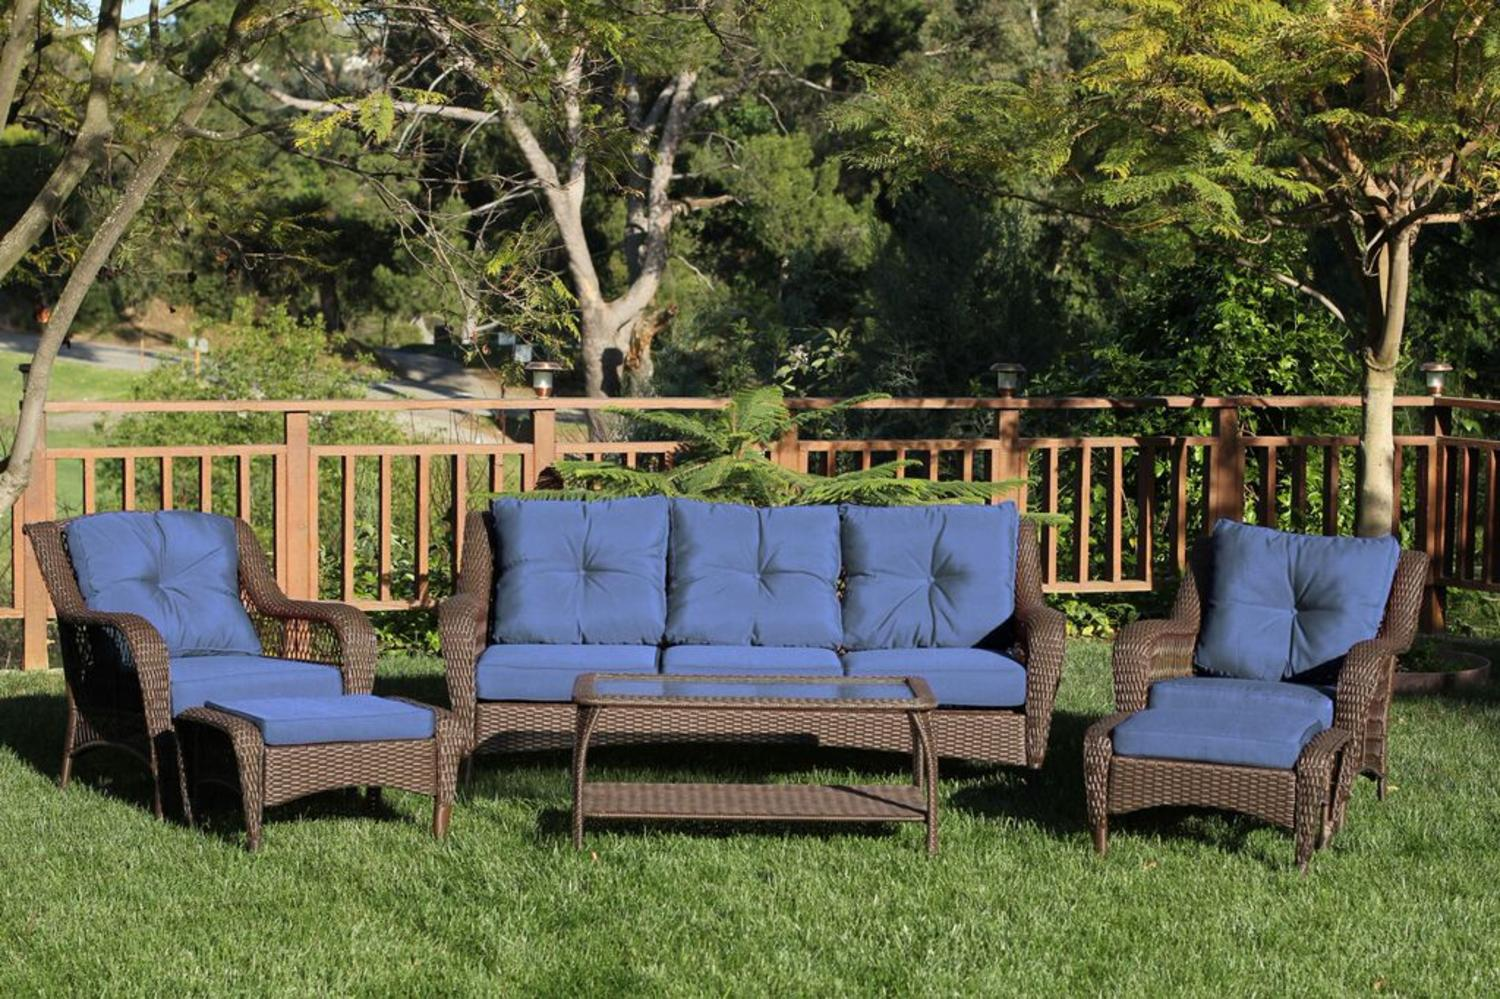 6-Piece Espresso Resin Wicker Outdoor Patio Seating Furniture Set Blue Cushions by CC Outdoor Living